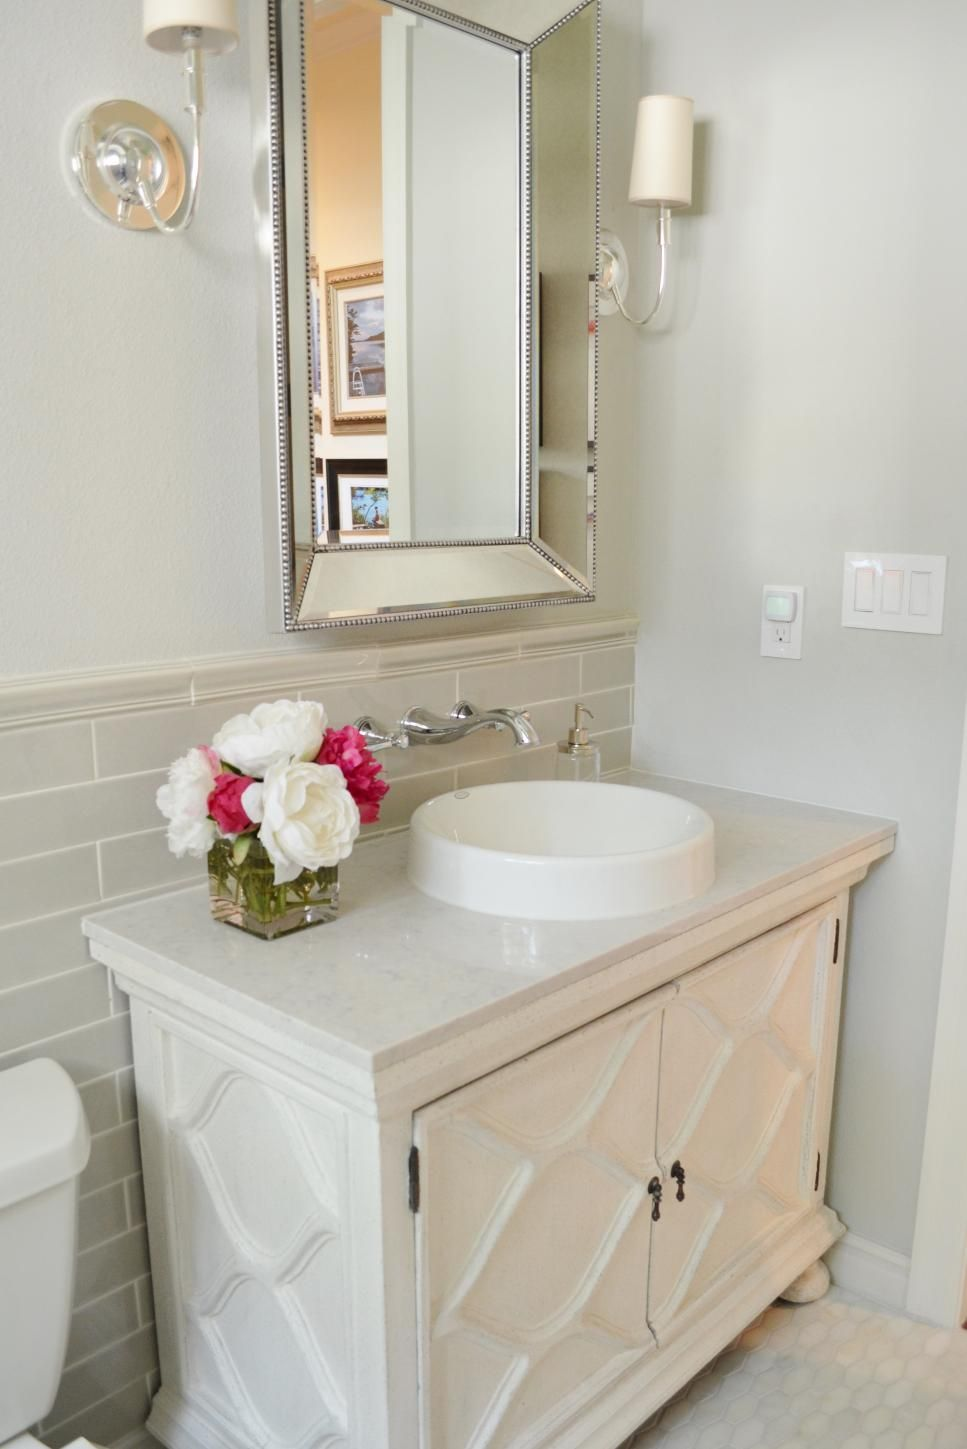 Before And After Bathroom Remodels On A Budget Budget Bathroom Remodel Bathrooms Remodel Bathroom Remodel Idea